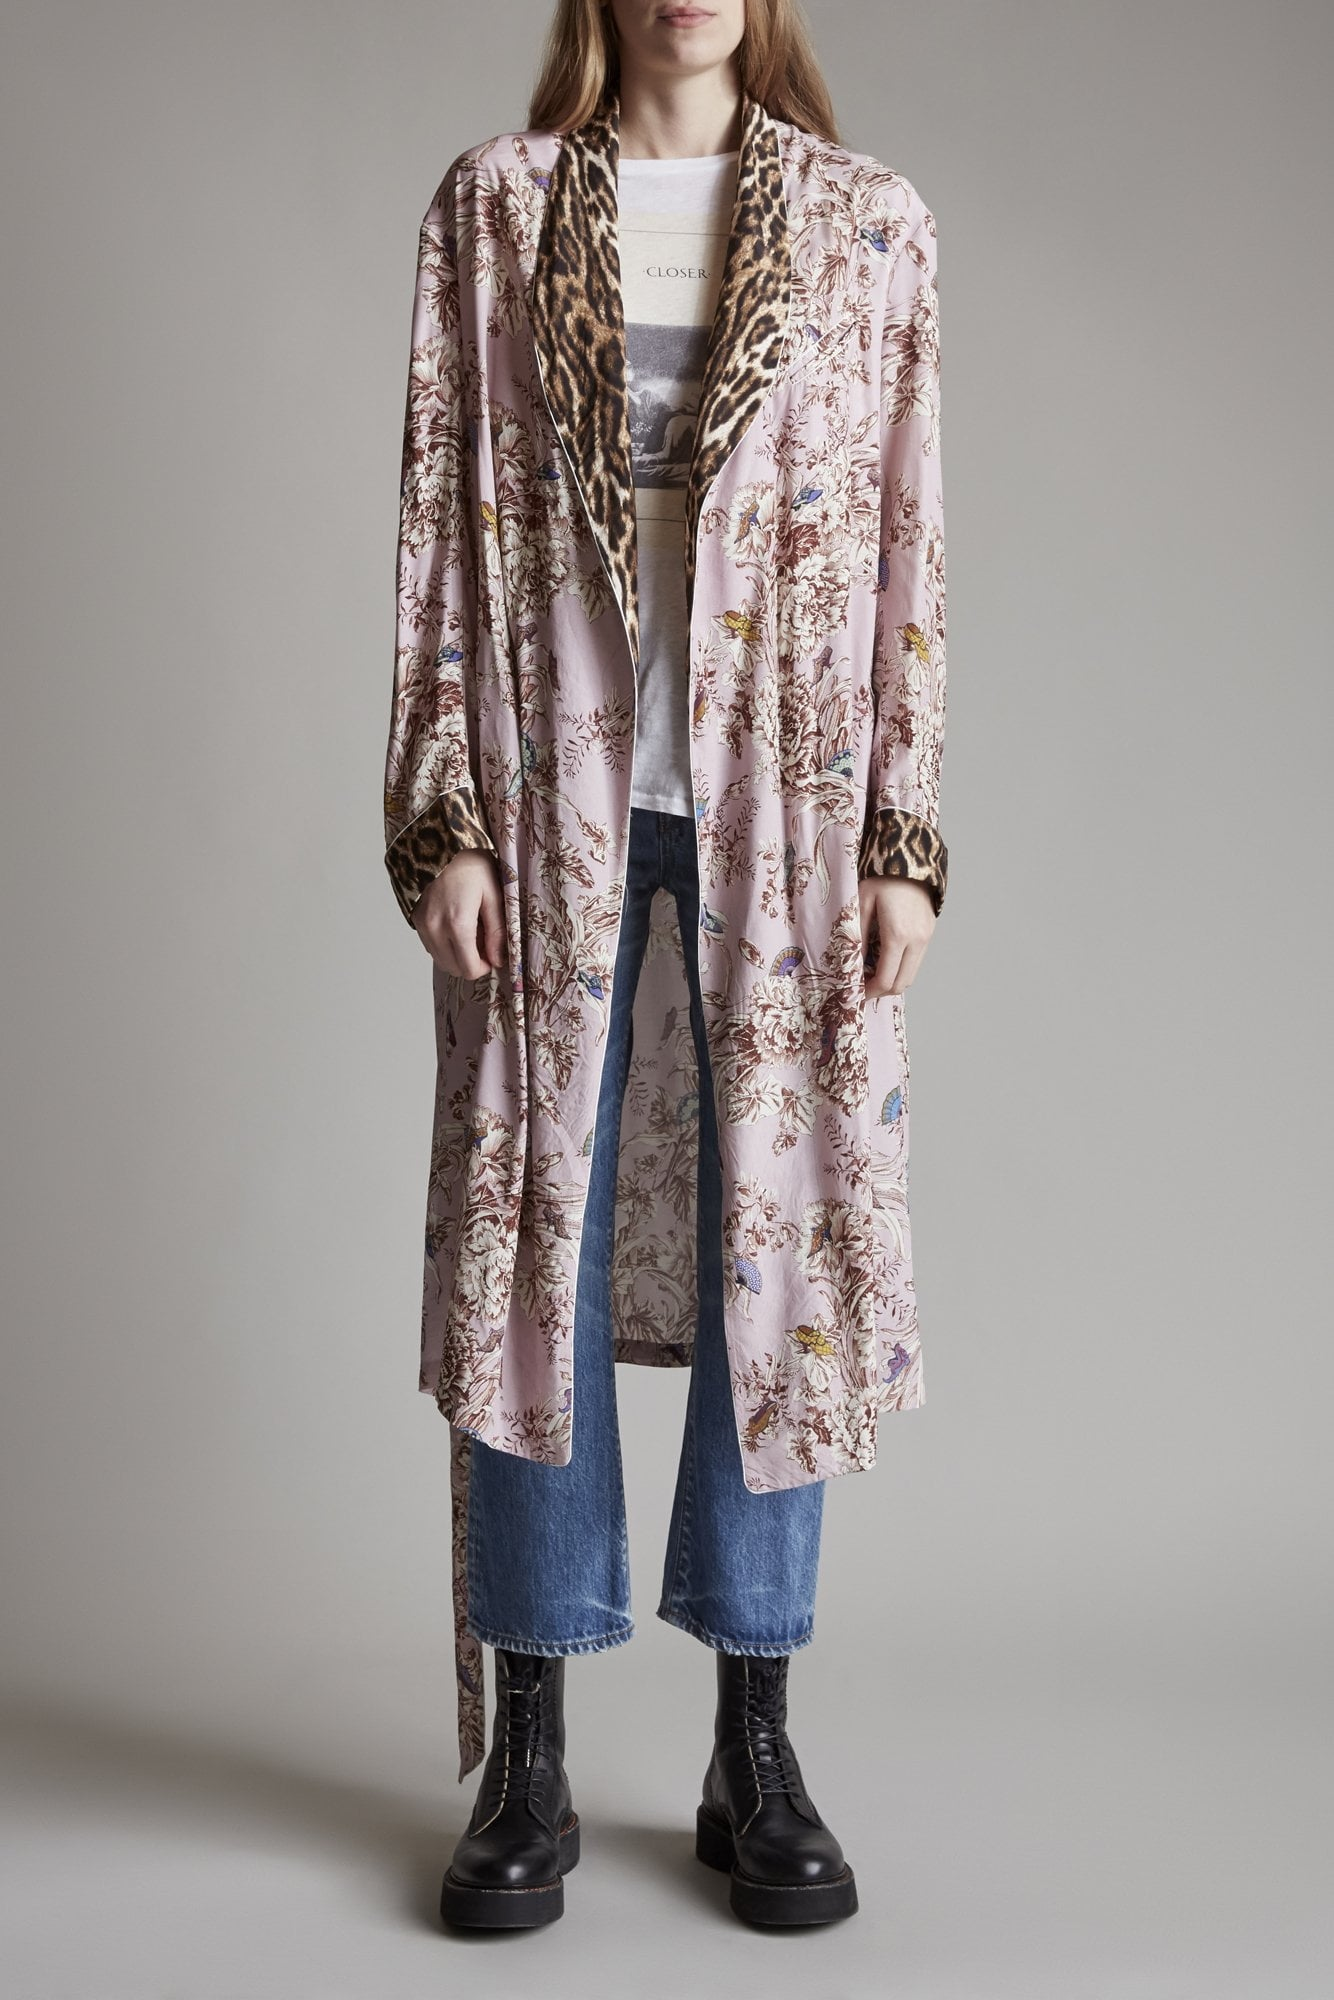 Smoking Robe with Piping- Pale Pink Floral with Leopard